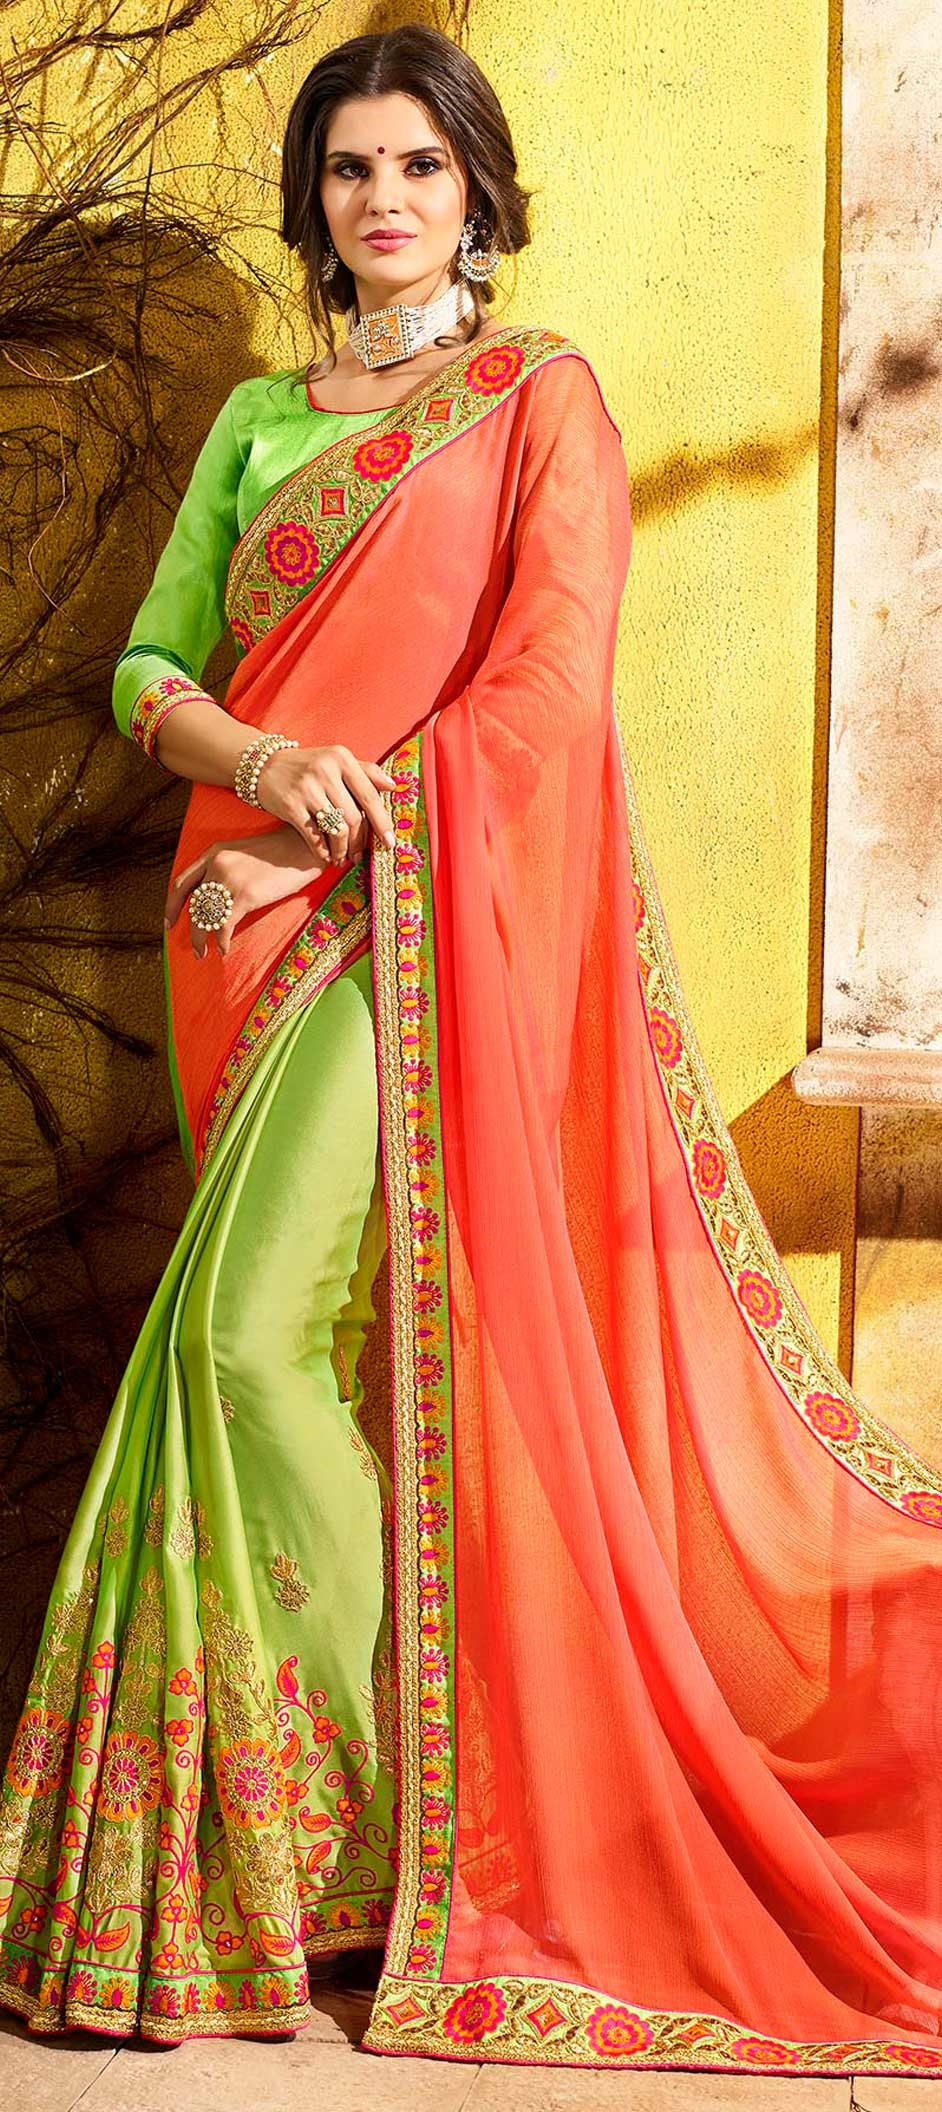 757928: Green, Orange color family Embroidered Sarees, Party Wear ...